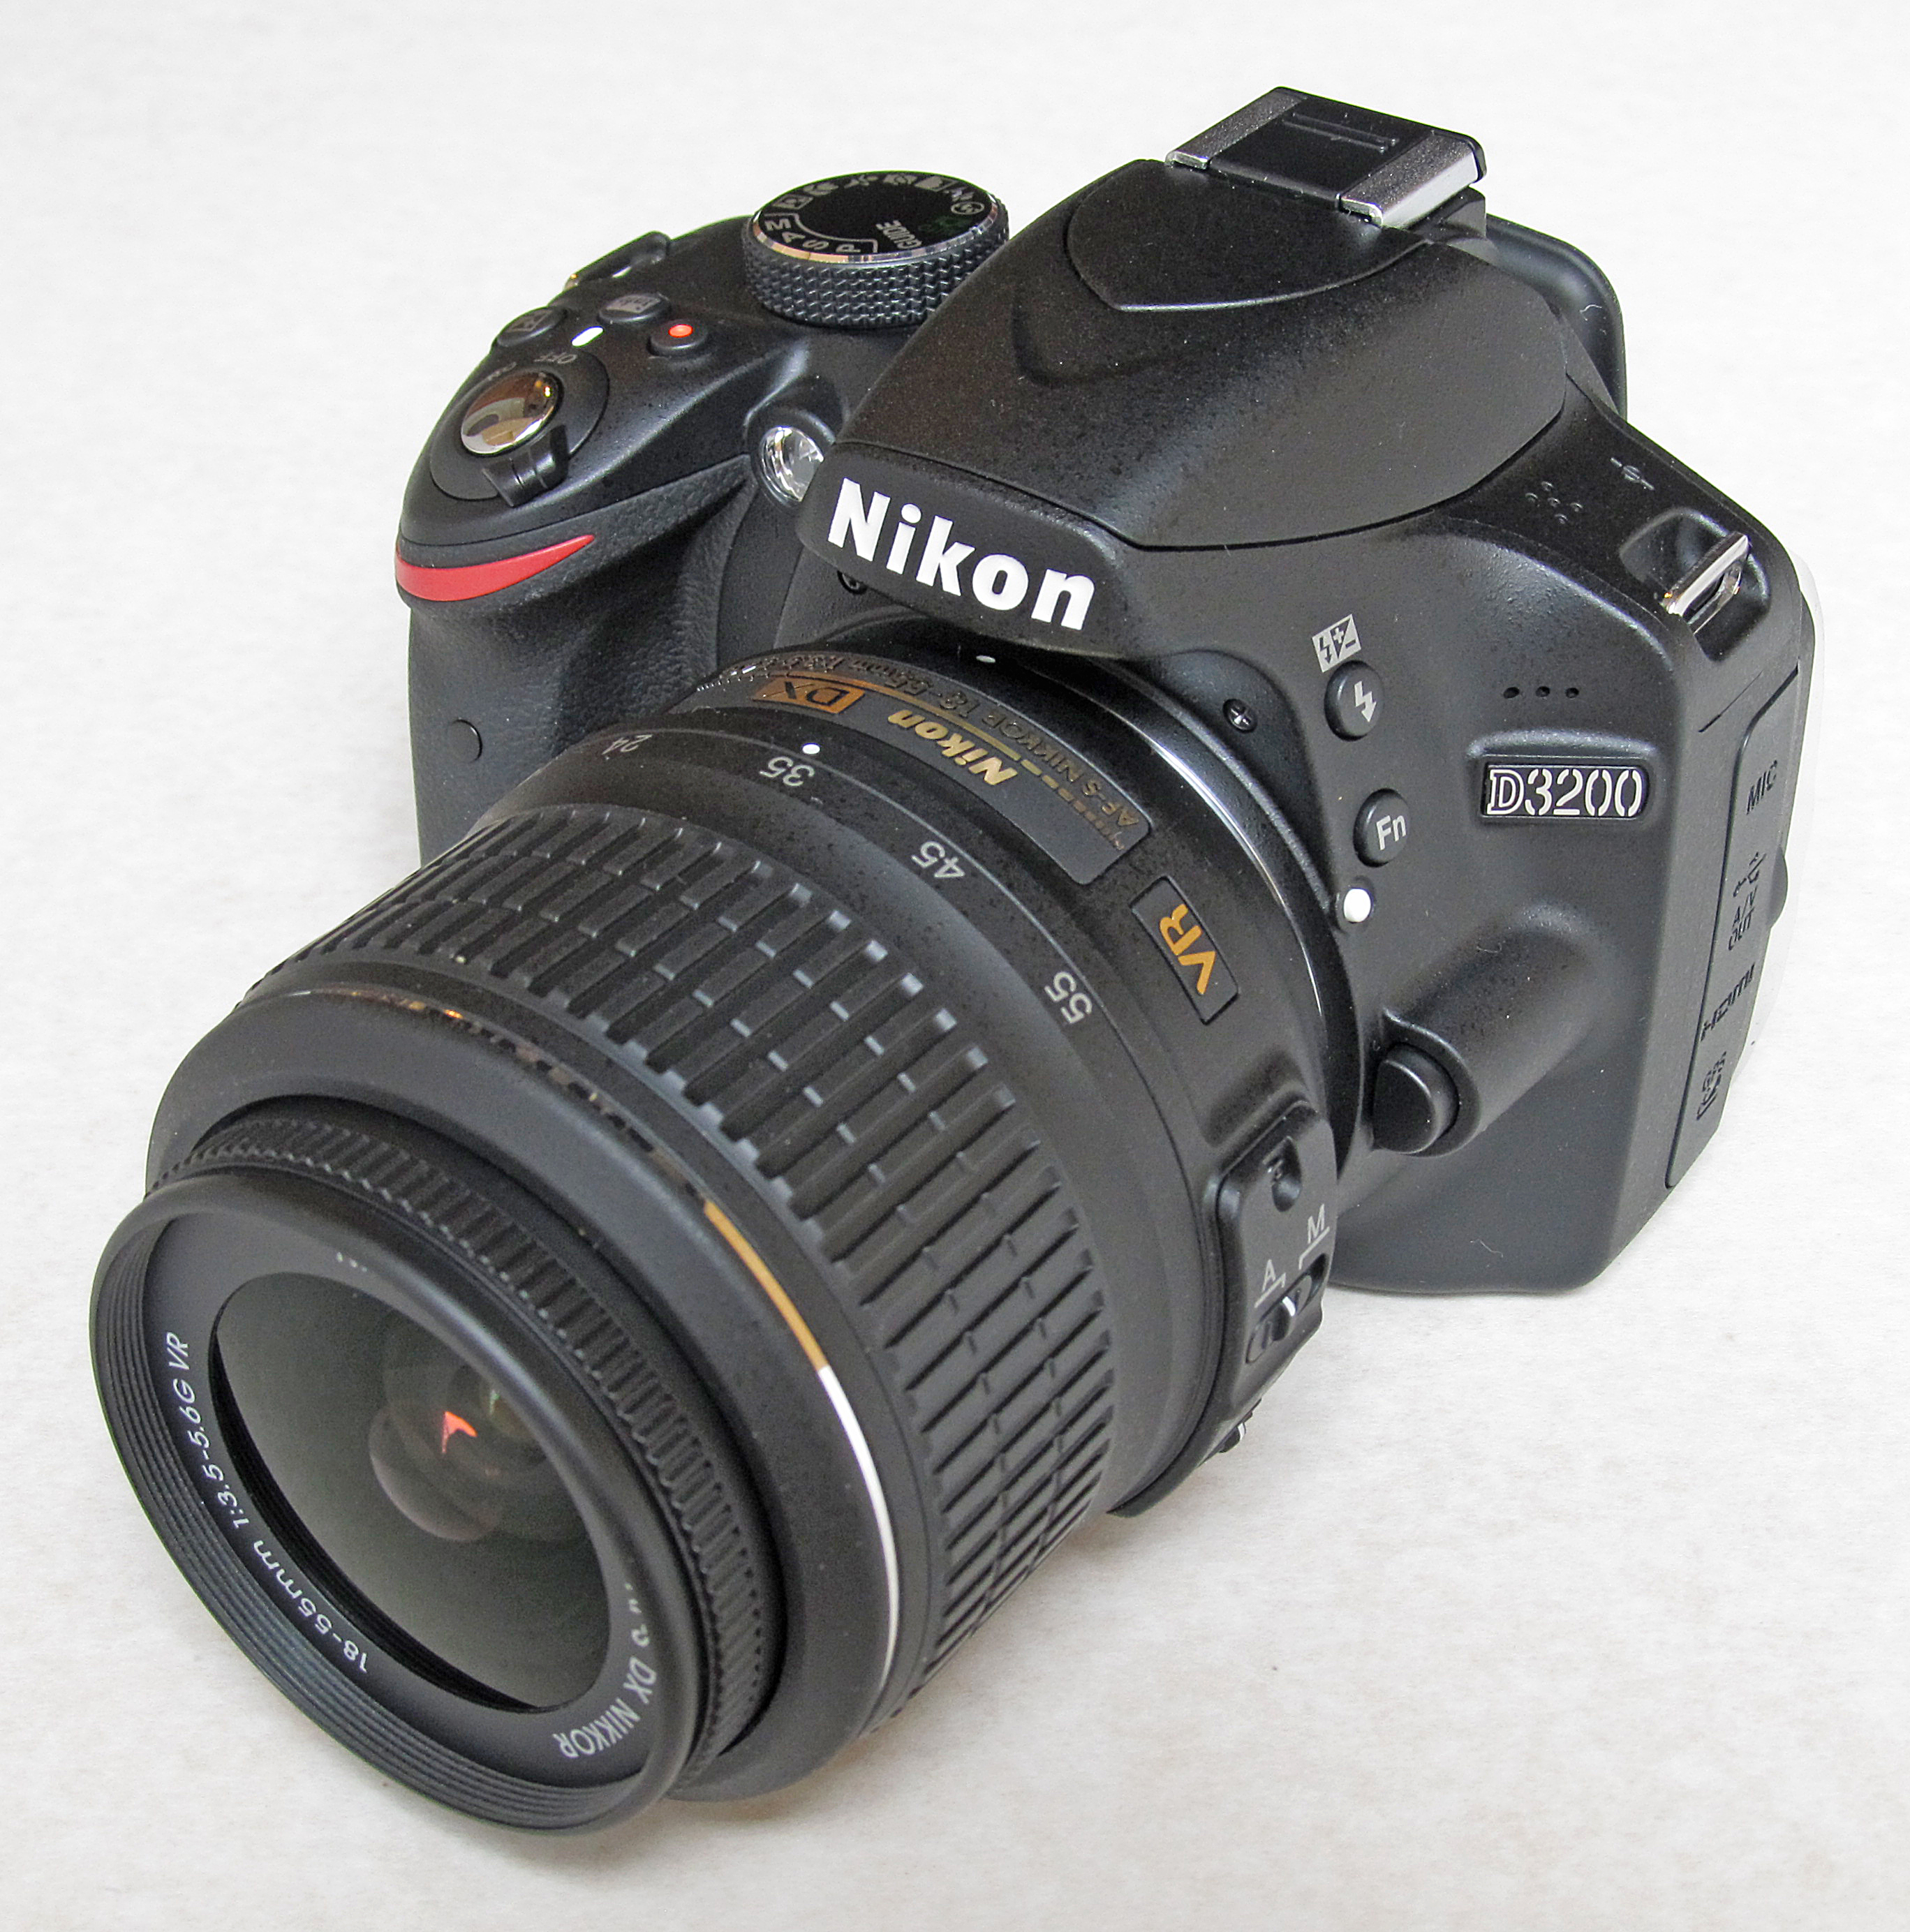 filenikon d3200 front leftjpg wikimedia commons